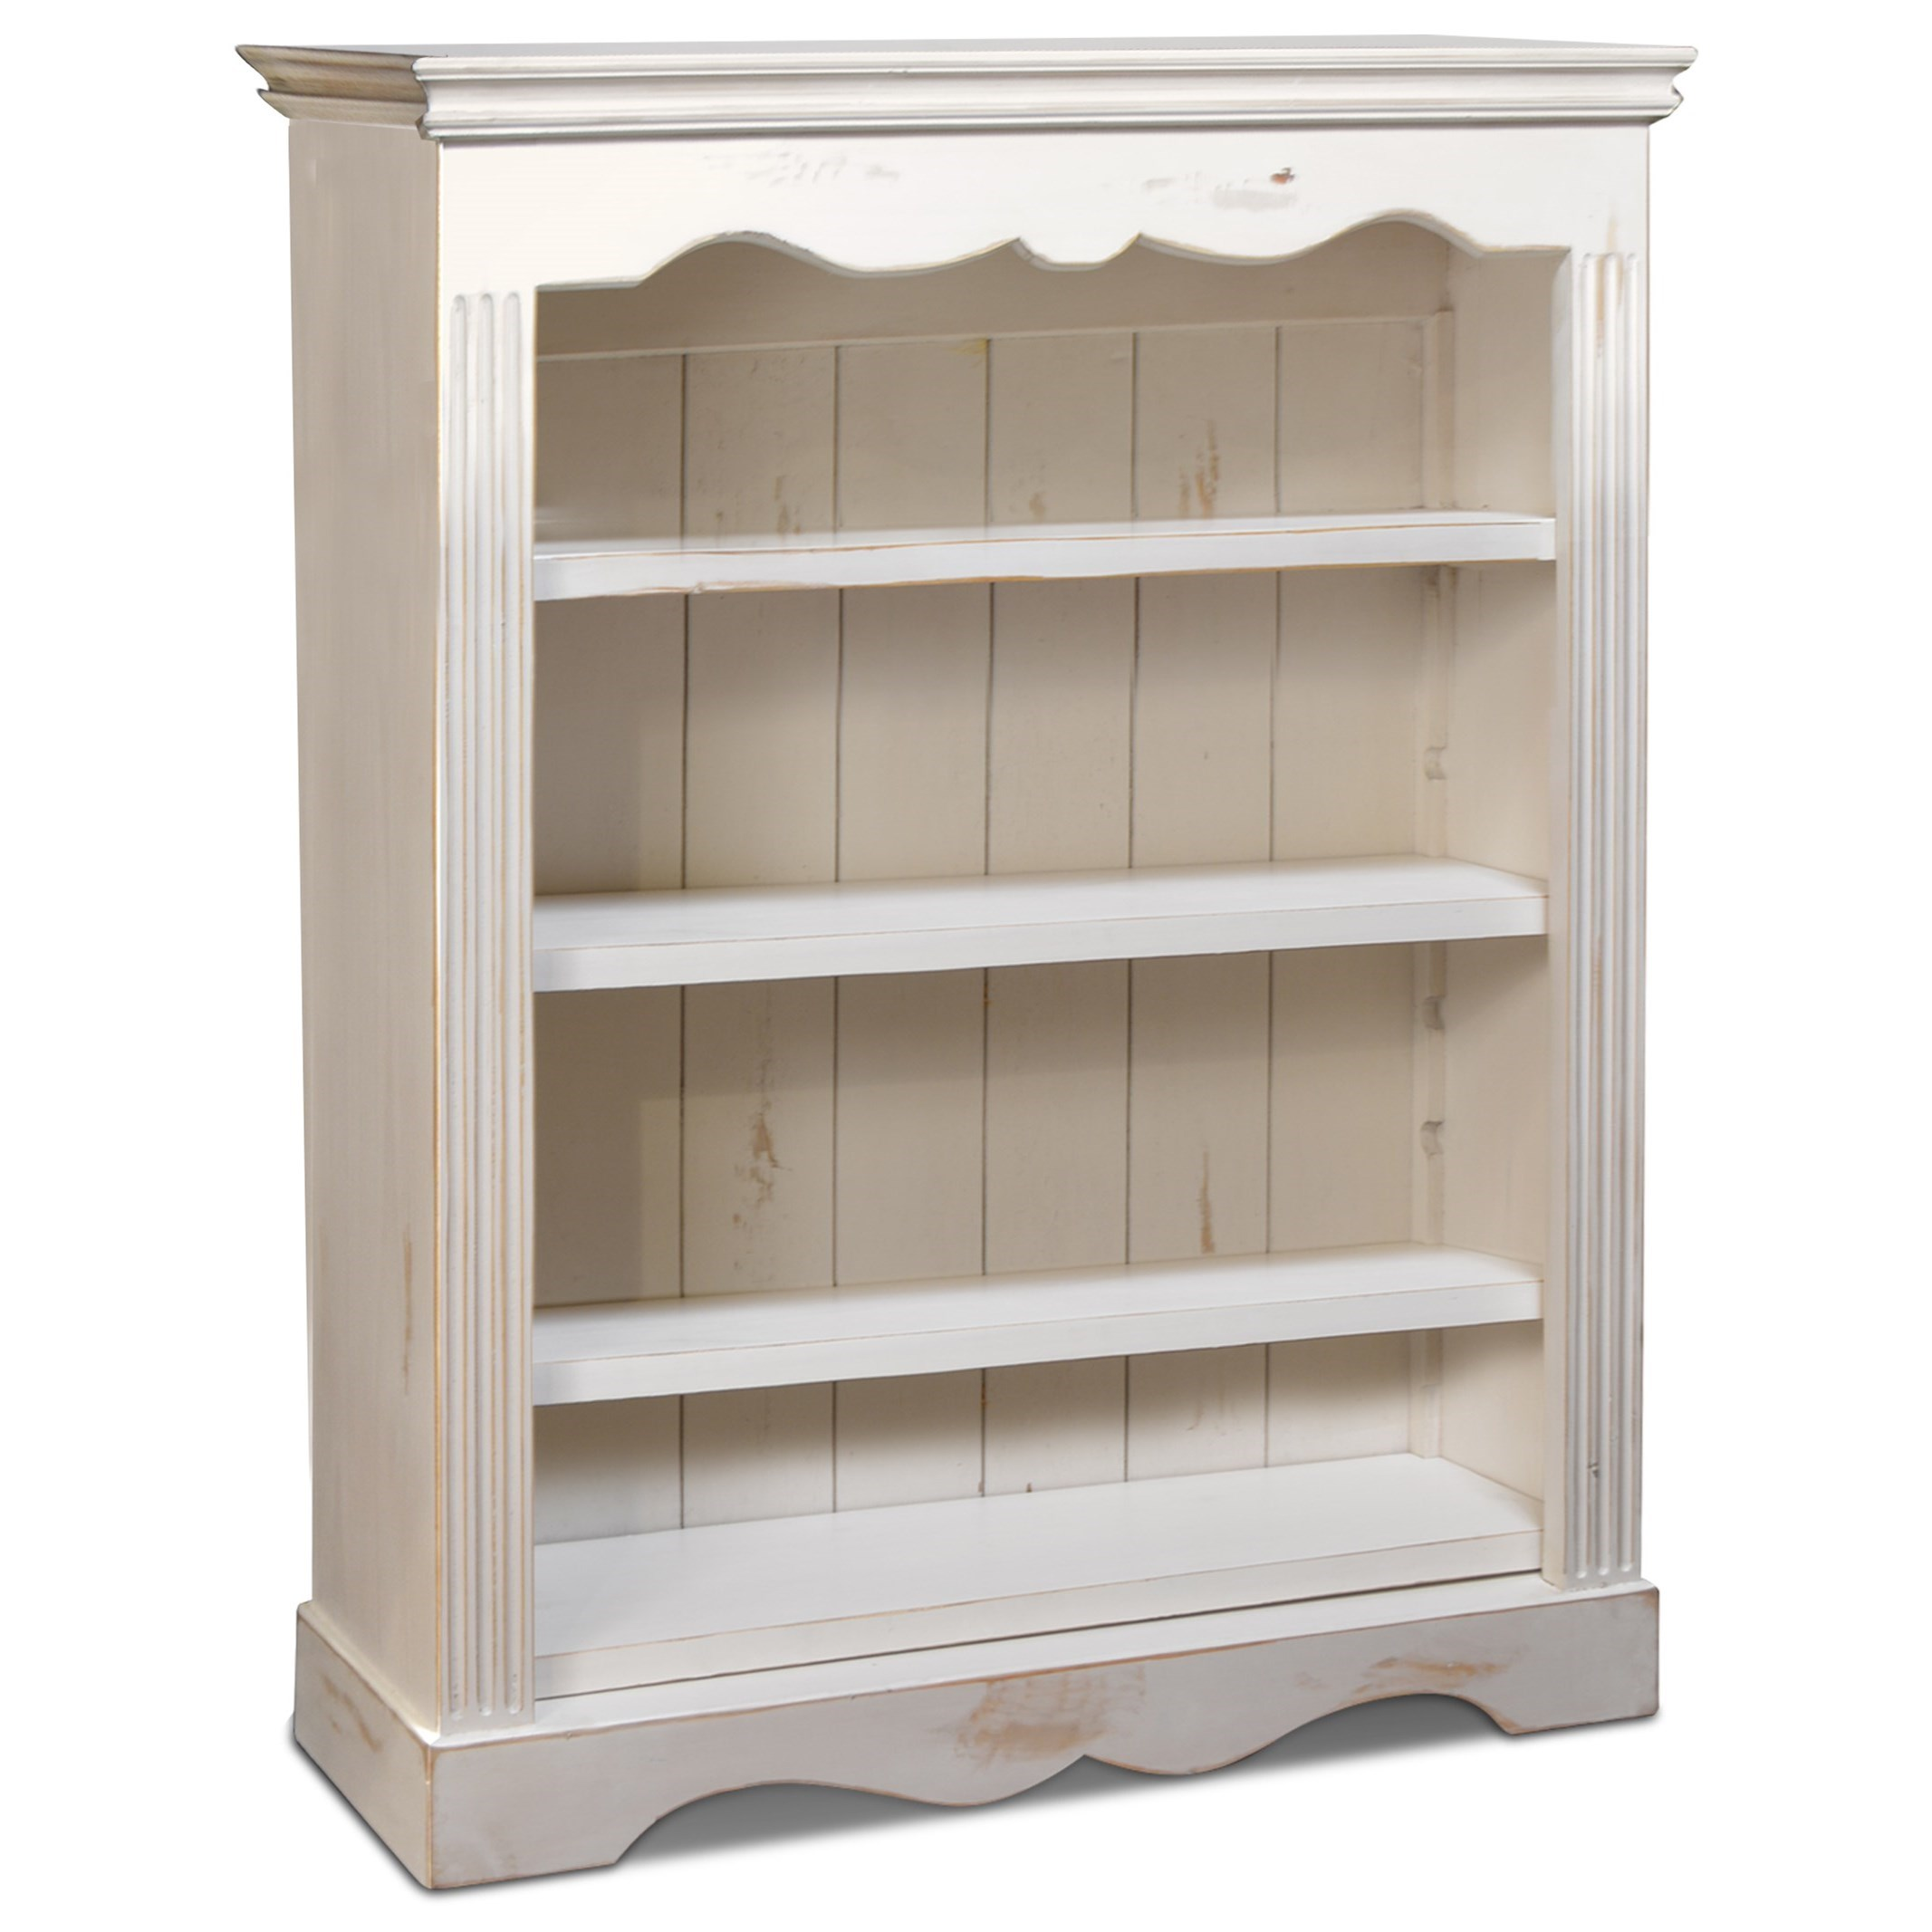 Larousse Open Bookcase by Horizon Home at Home Furnishings Direct